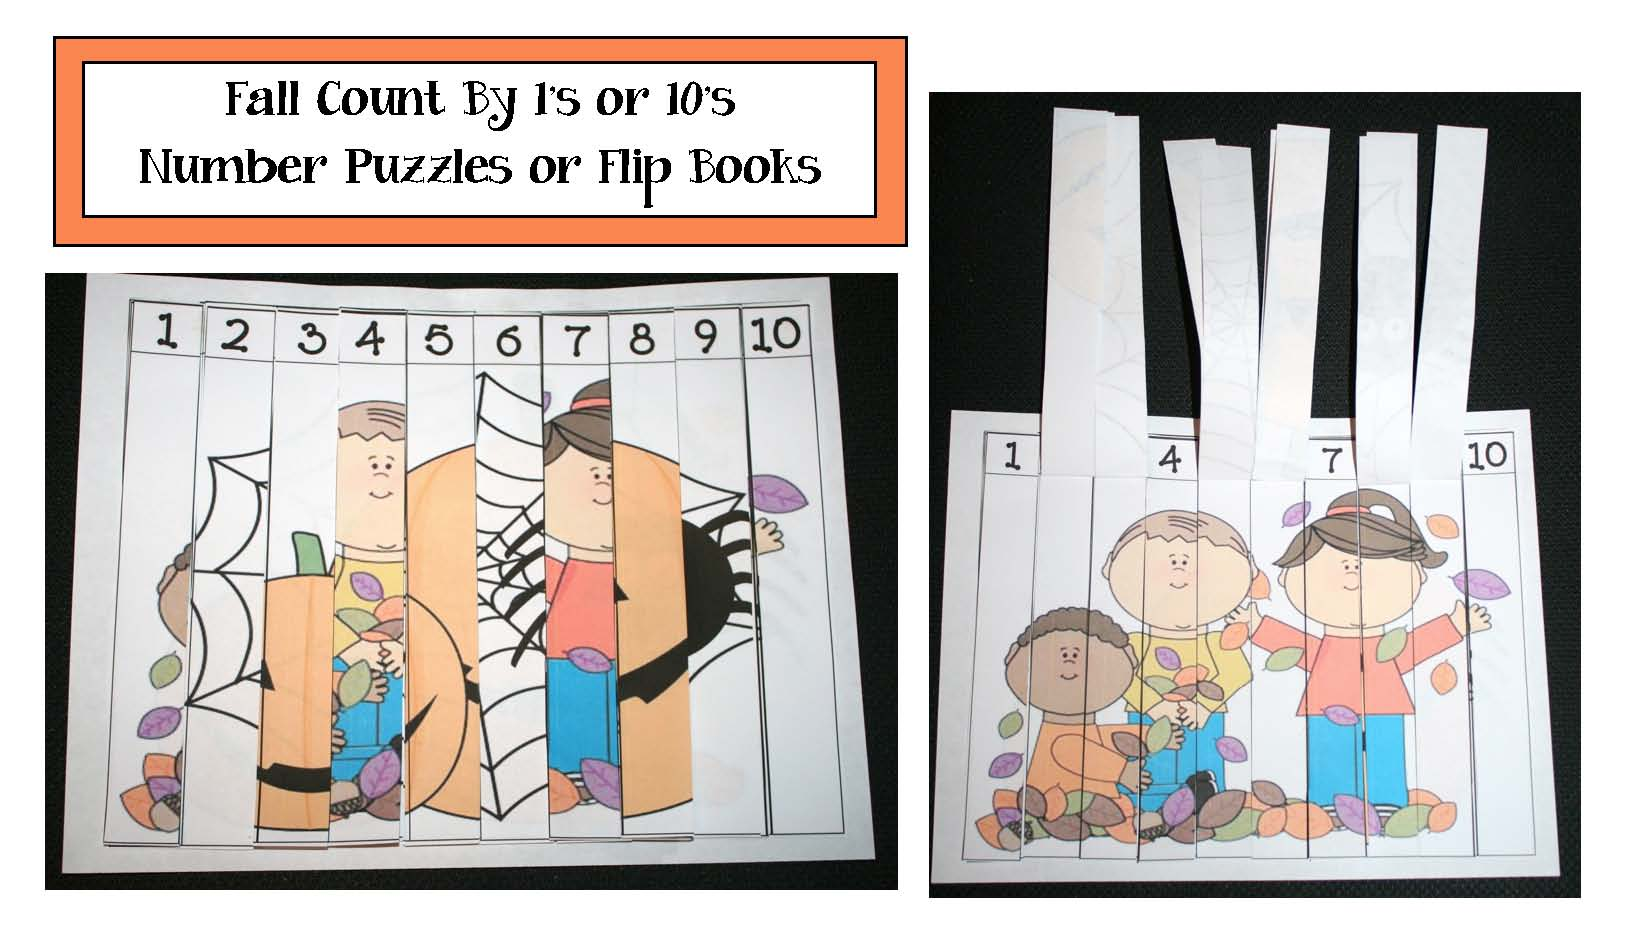 number puzzles, math centers, sequencing numbers, counting activities, skip counting by 10's, activities for skip counting by 10's, pumpkin activities, bat activities, Halloween activities, scarecrow activities, fall puzzles, Halloween games, Halloween puzzles, puzzle pictures, number strip puzzles, leaf puzzles, flip booklet templates, flip booklet patterns, number flip booklet pattern, pumpkin puzzles, leaf activities